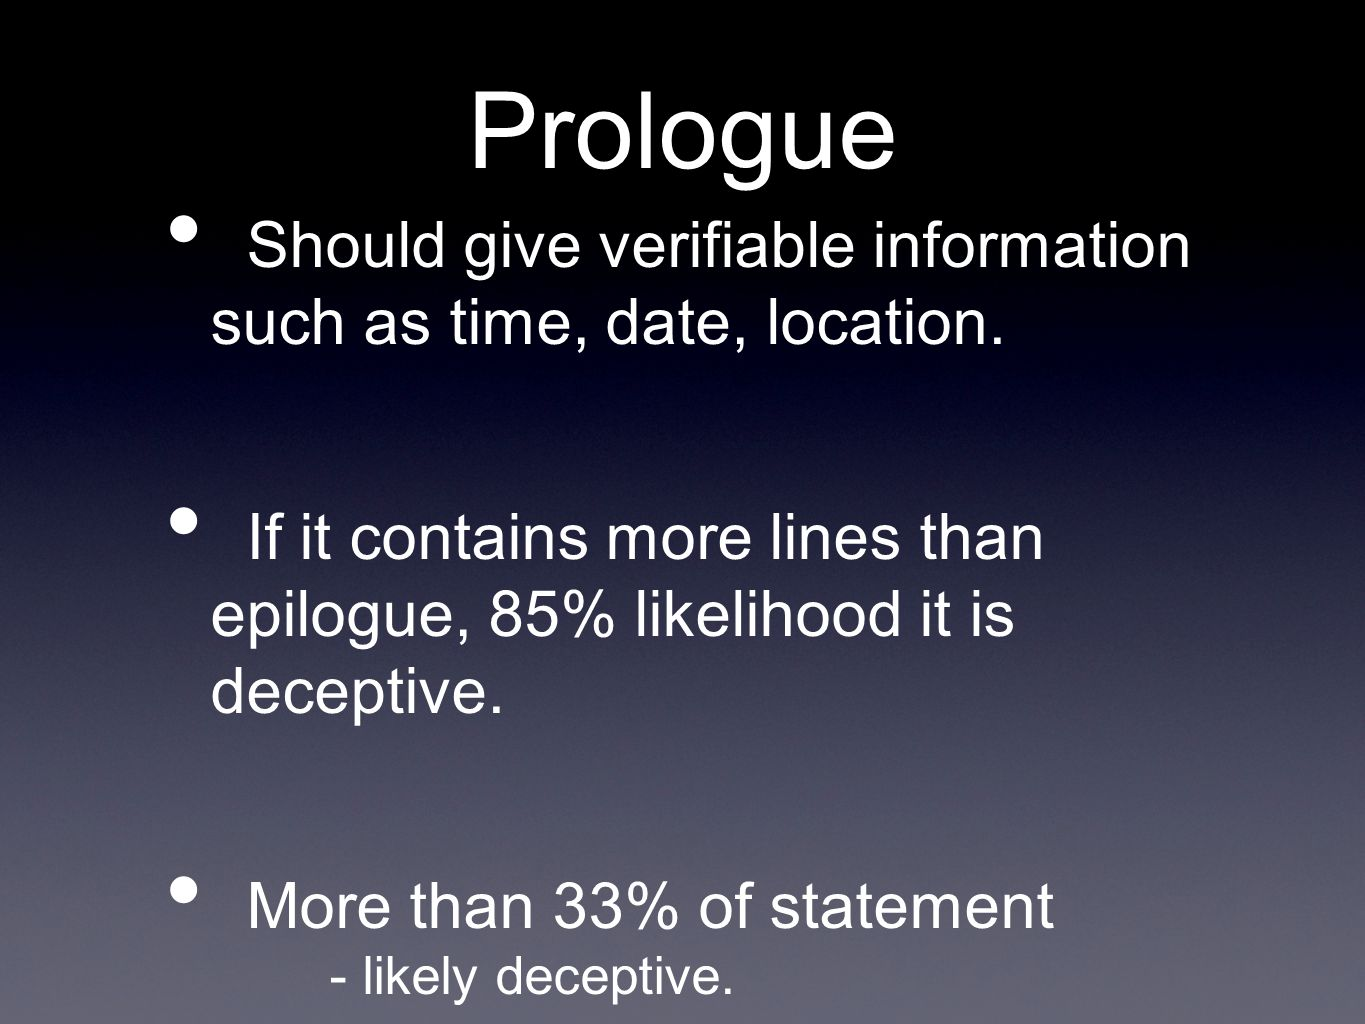 PrologueShould give verifiable information such as time, date, location. If it contains more lines than epilogue, 85% likelihood it is deceptive.